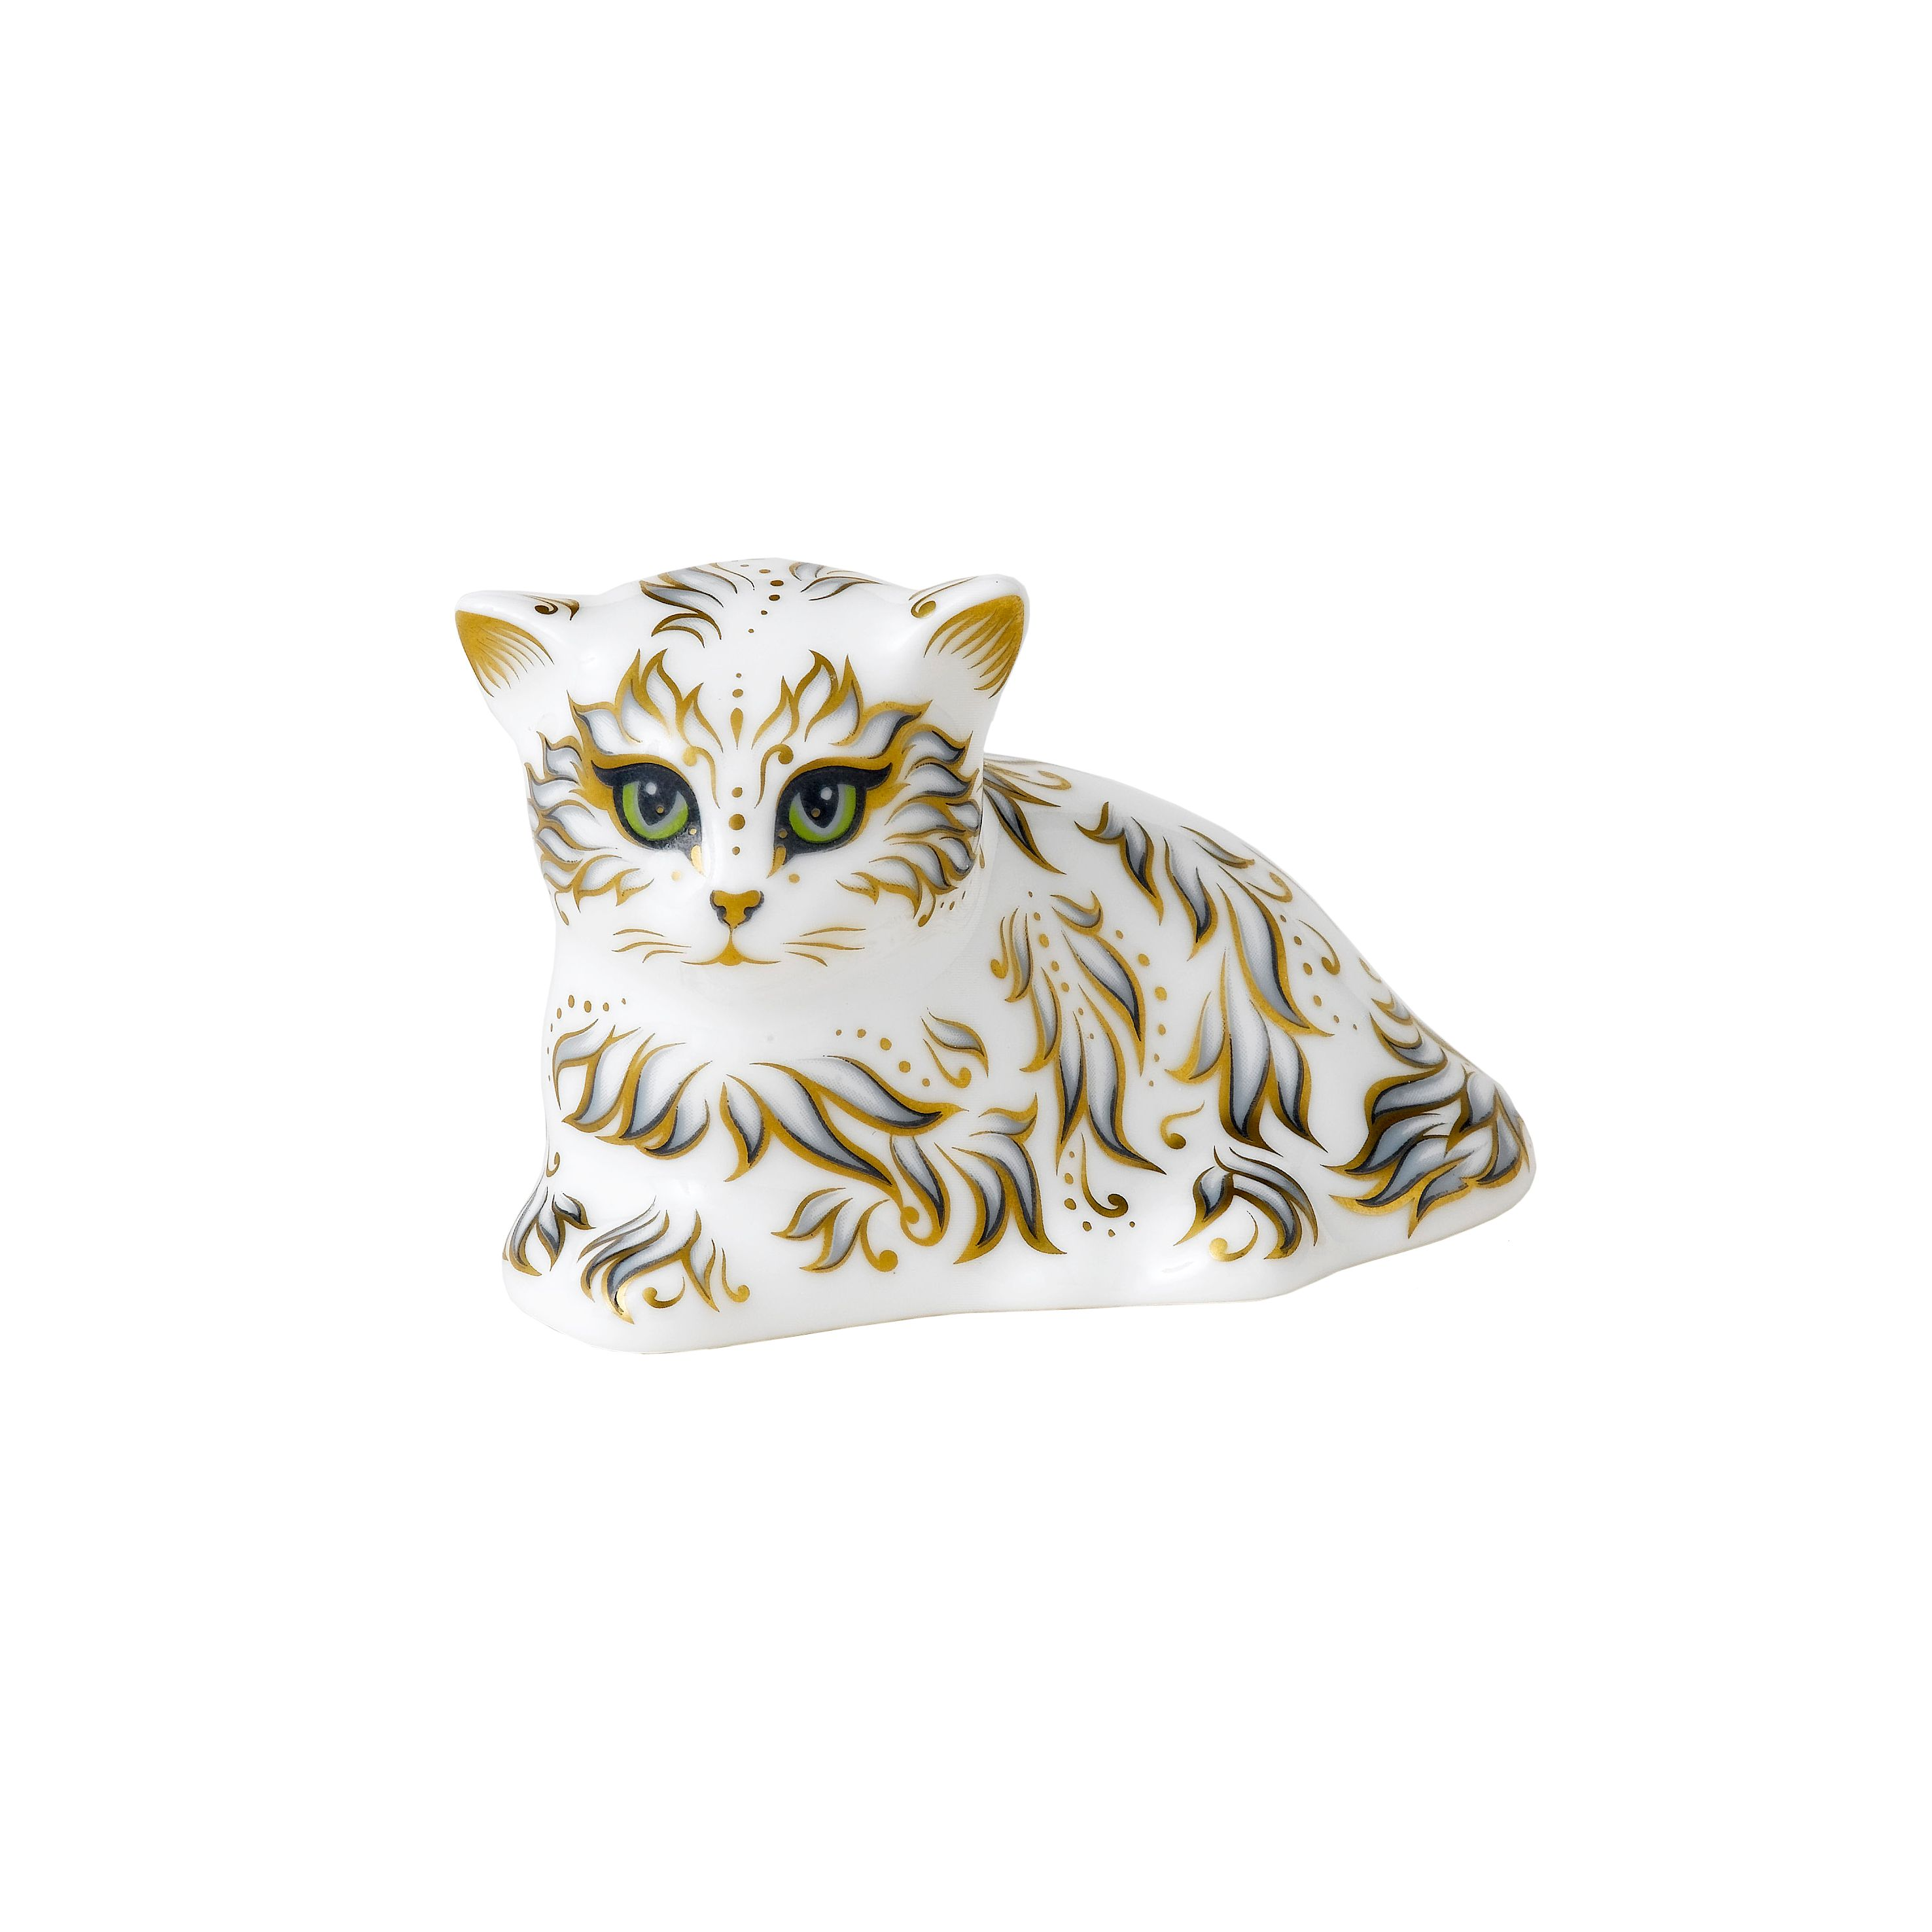 Image of Royal Crown Derby Millie kitten